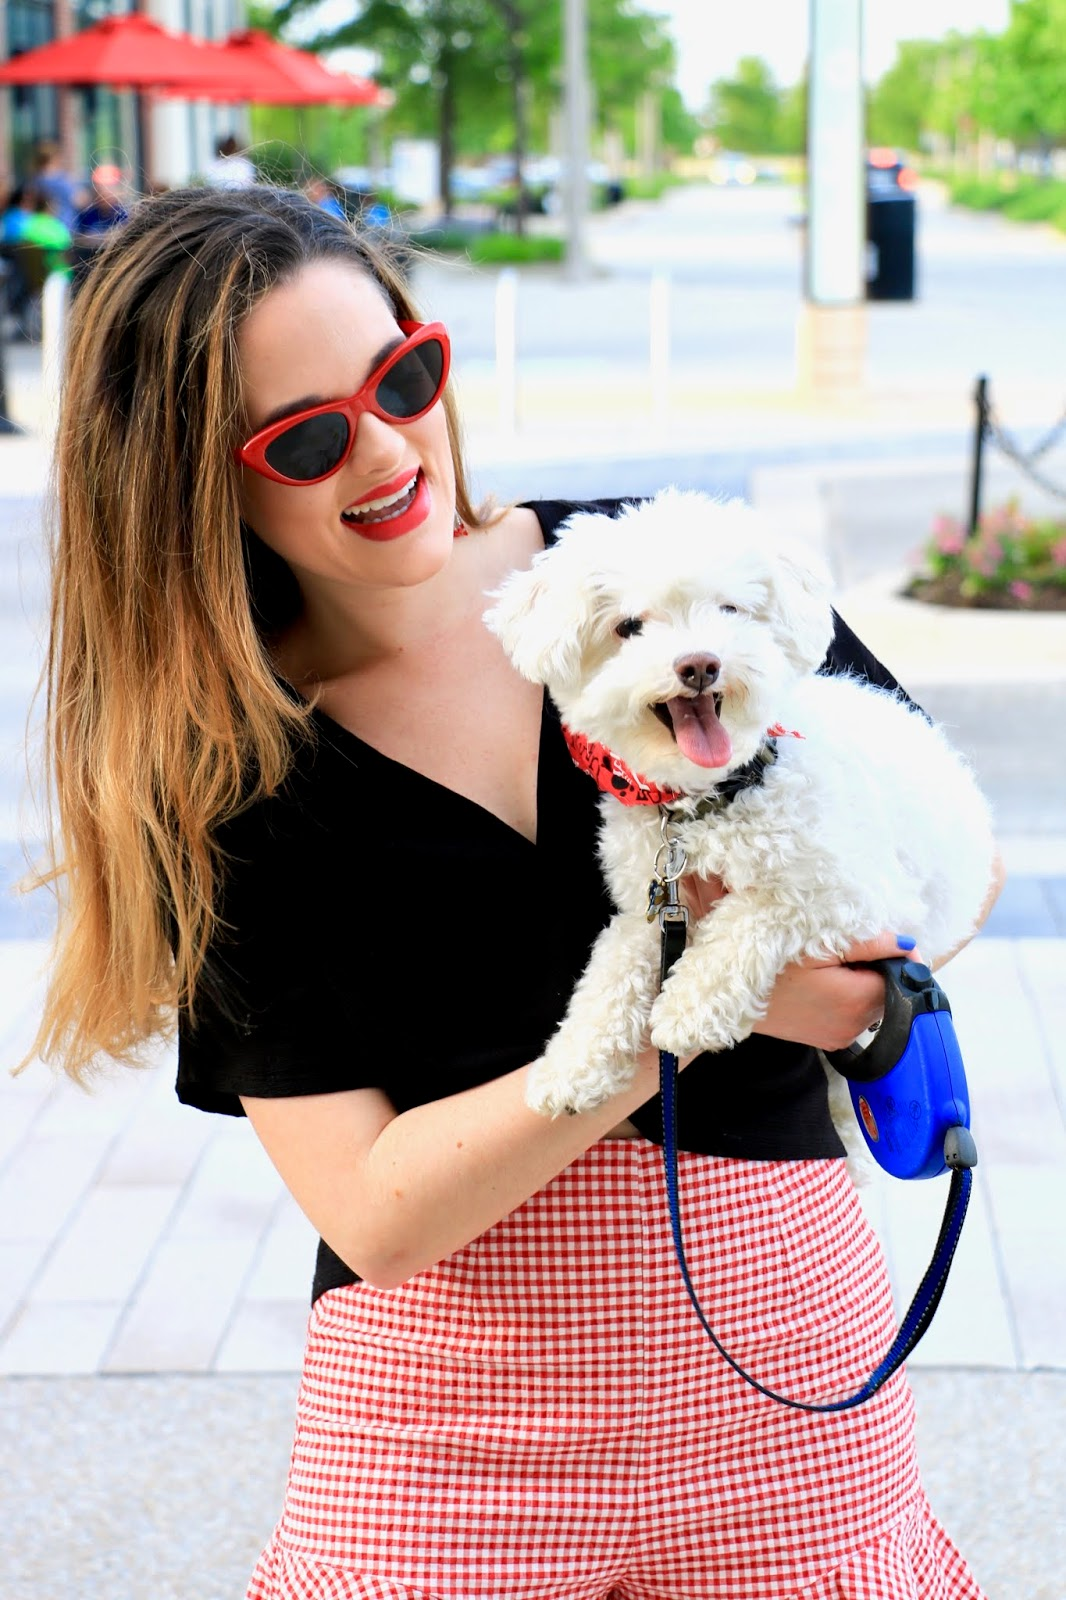 Nyc fashion blogger Kathleen Harper with her bichon maltese puppy